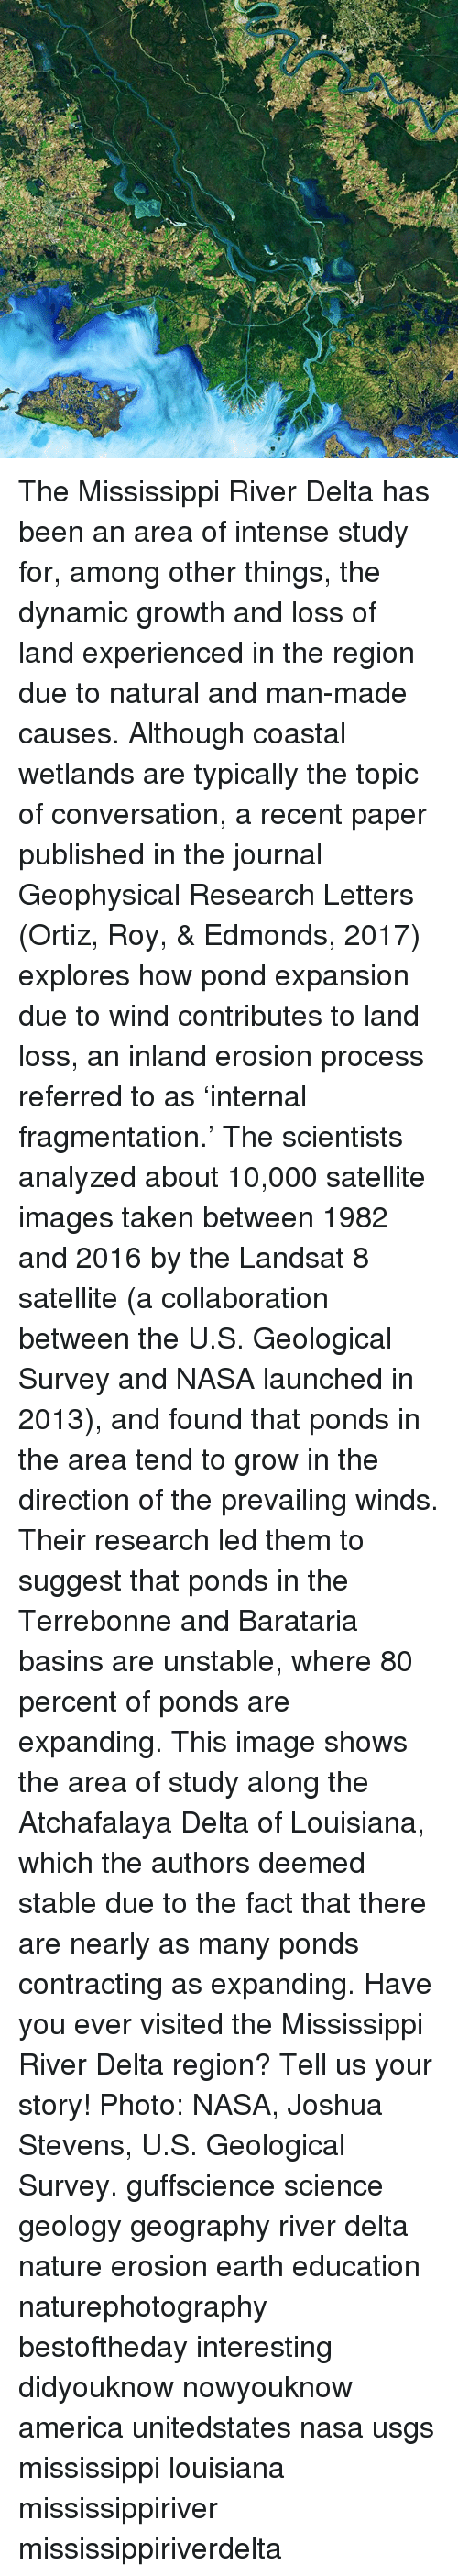 America, Memes, and Nasa: The Mississippi River Delta has been an area of intense study for, among other things, the dynamic growth and loss of land experienced in the region due to natural and man-made causes. Although coastal wetlands are typically the topic of conversation, a recent paper published in the journal Geophysical Research Letters (Ortiz, Roy, & Edmonds, 2017) explores how pond expansion due to wind contributes to land loss, an inland erosion process referred to as 'internal fragmentation.' The scientists analyzed about 10,000 satellite images taken between 1982 and 2016 by the Landsat 8 satellite (a collaboration between the U.S. Geological Survey and NASA launched in 2013), and found that ponds in the area tend to grow in the direction of the prevailing winds. Their research led them to suggest that ponds in the Terrebonne and Barataria basins are unstable, where 80 percent of ponds are expanding. This image shows the area of study along the Atchafalaya Delta of Louisiana, which the authors deemed stable due to the fact that there are nearly as many ponds contracting as expanding. Have you ever visited the Mississippi River Delta region? Tell us your story! Photo: NASA, Joshua Stevens, U.S. Geological Survey. guffscience science geology geography river delta nature erosion earth education naturephotography bestoftheday interesting didyouknow nowyouknow america unitedstates nasa usgs mississippi louisiana mississippiriver mississippiriverdelta